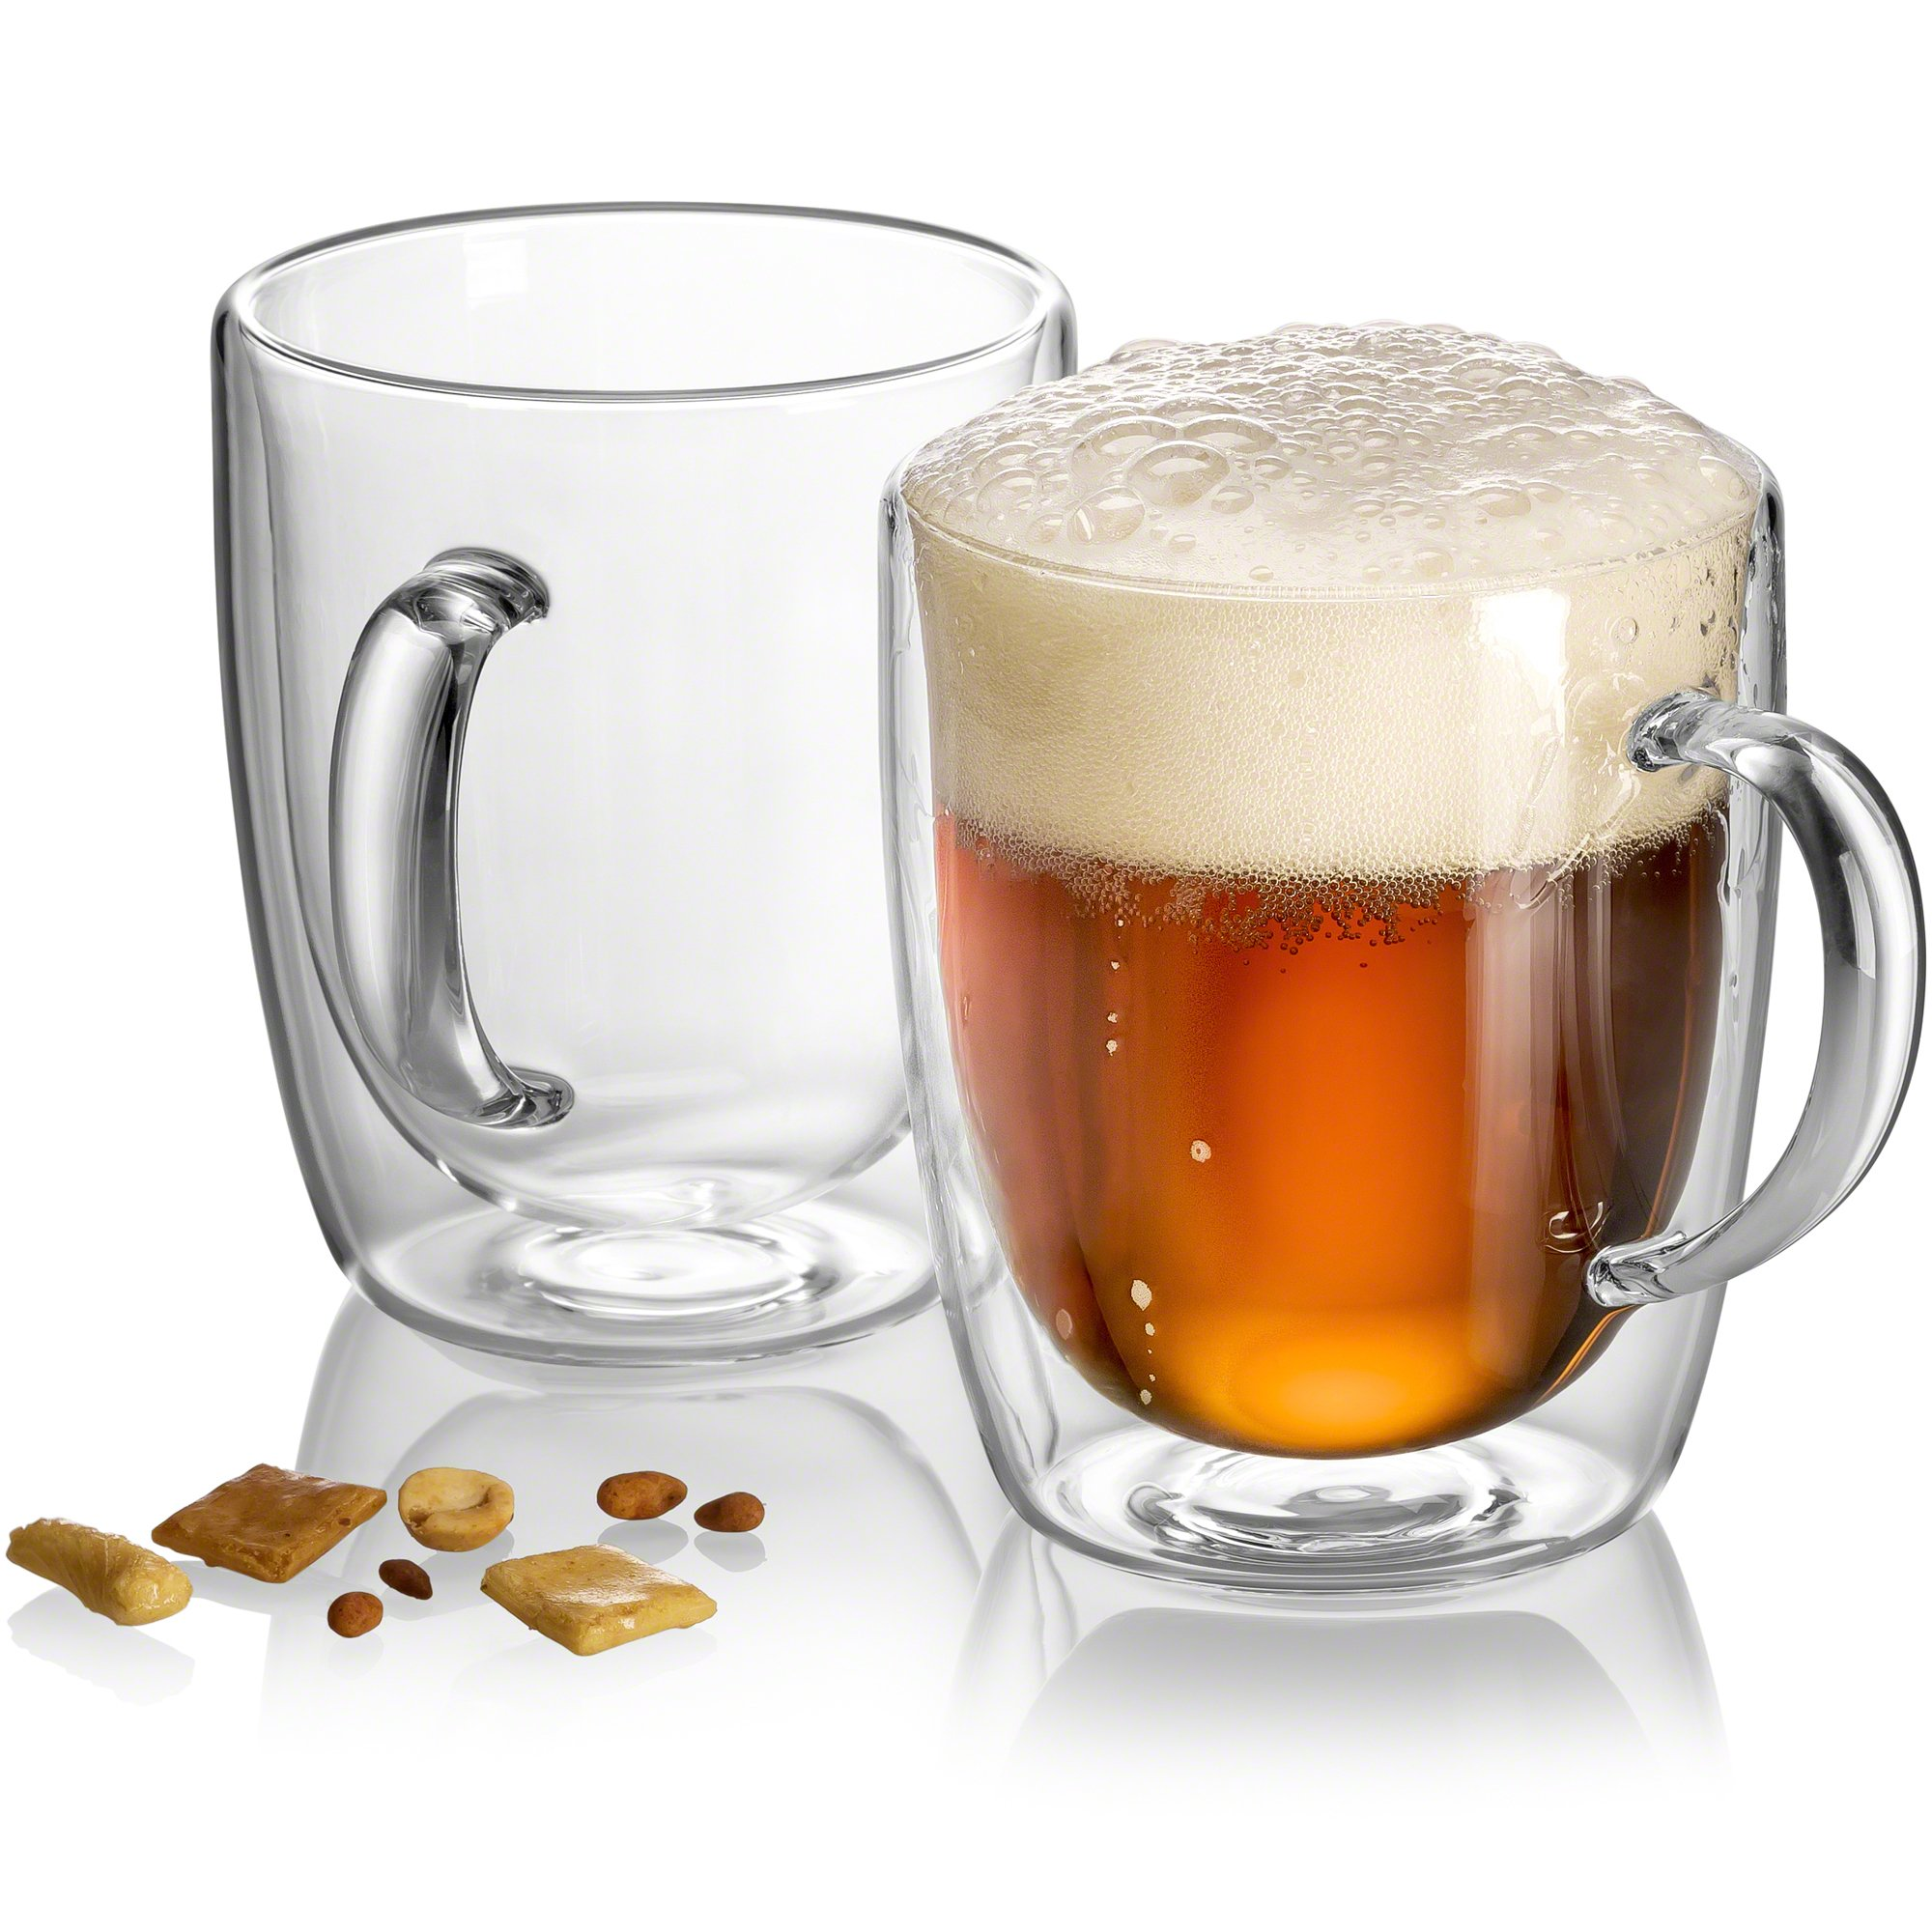 Pint Glasses - Double Wall Glass - Beer Mugs for Freezer - Dishwasher Safe - 18 oz (Set of 2) by JECOBI (Image #1)